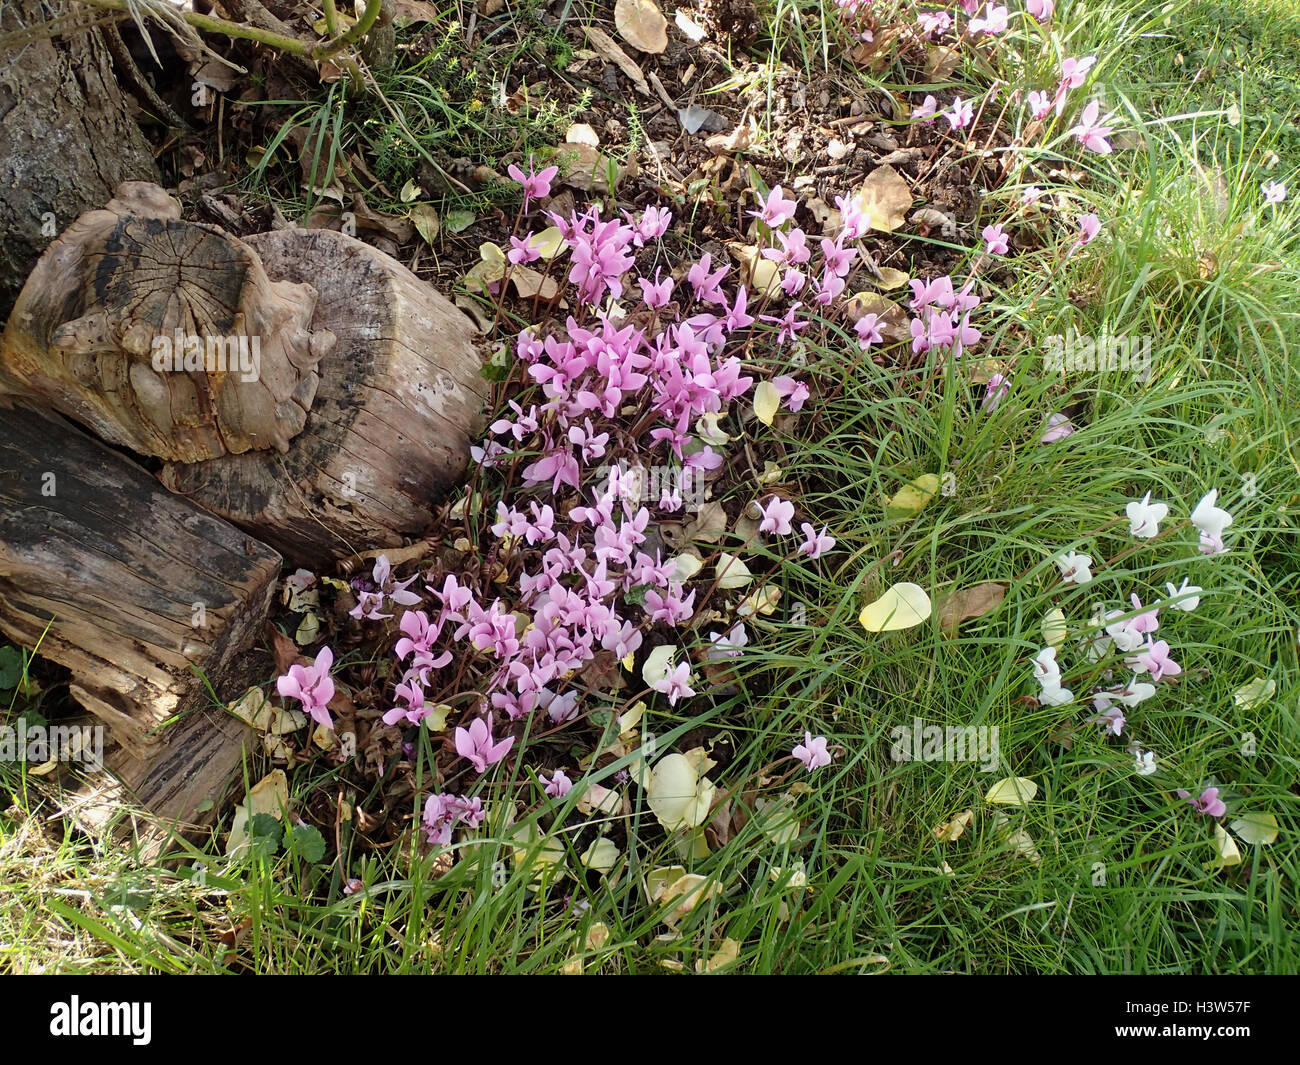 Naturalised ivy-leaved cyclamen (Cyclamen hederifolium) by the base of a tree at the edge of a lawn, with old logs - Stock Image